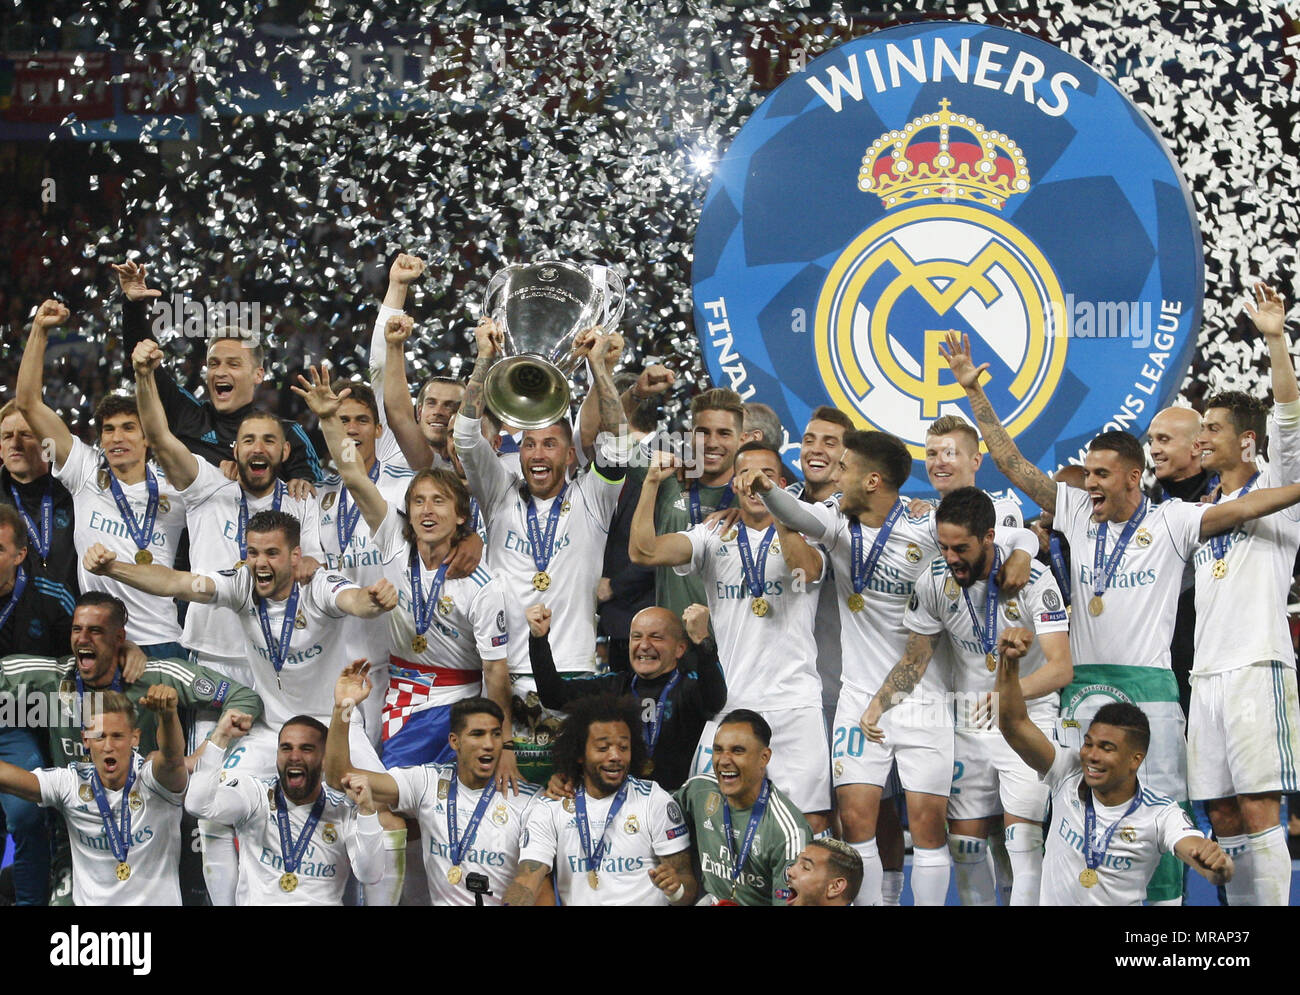 Kiev, Ukraine. 26th May, 2018. Real Madrid players celebrate with the trophy after winning the UEFA Champions League final soccer match Real Madrid vs Liverpool FC, at the NSC Olimpiyskiy stadium in Kiev on 26 May 2018. Credit: Serg Glovny/ZUMA Wire/Alamy Live News Stock Photo